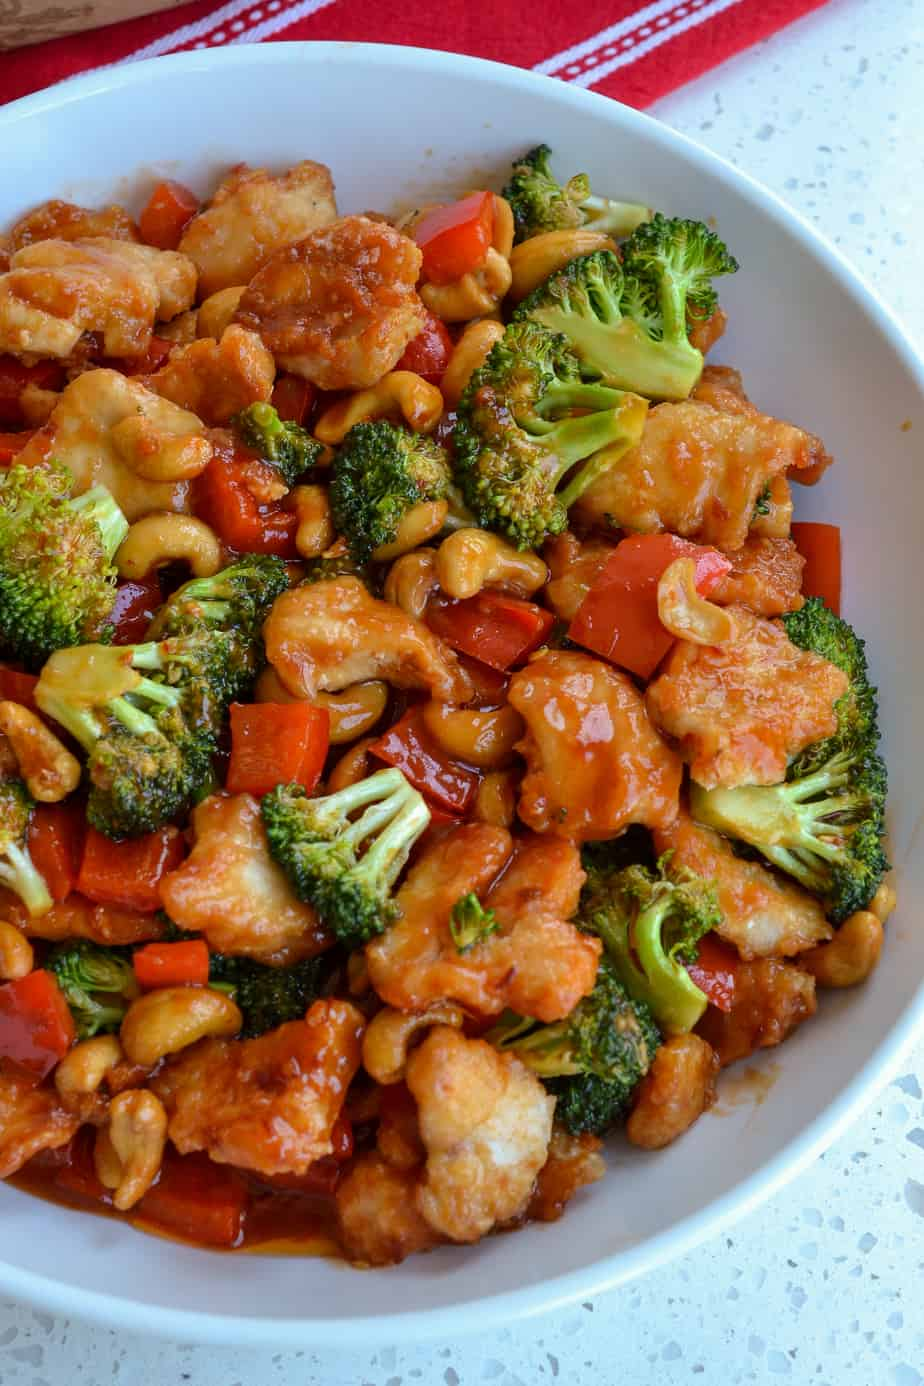 Cashew chicken with broccoli and red peppers.